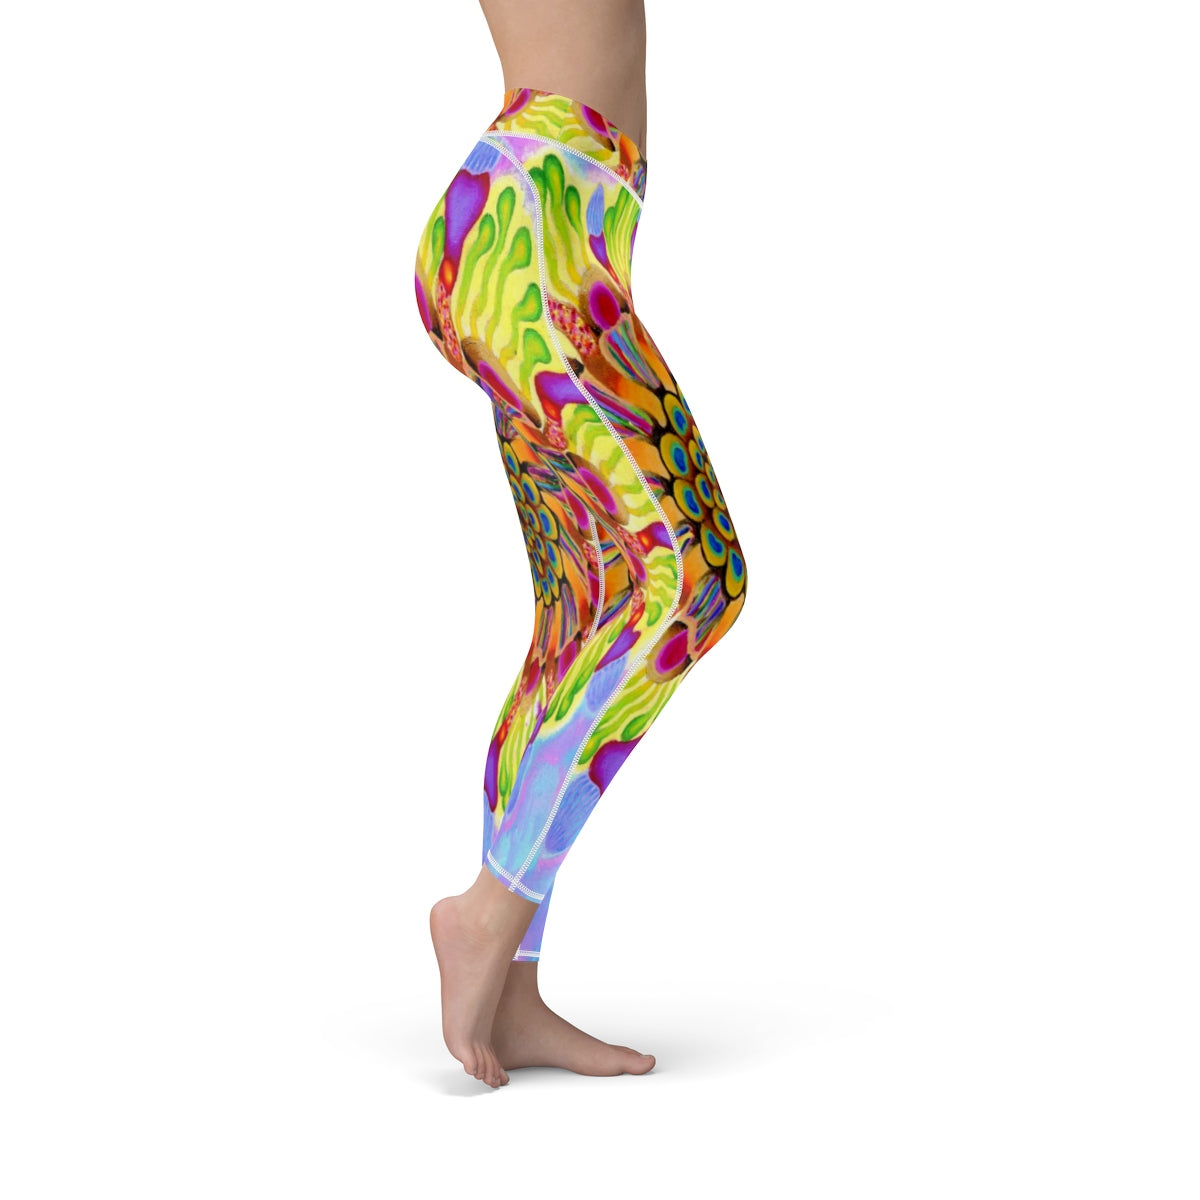 Popping Boba Cut Sew Sport Leggings Art By Ogus